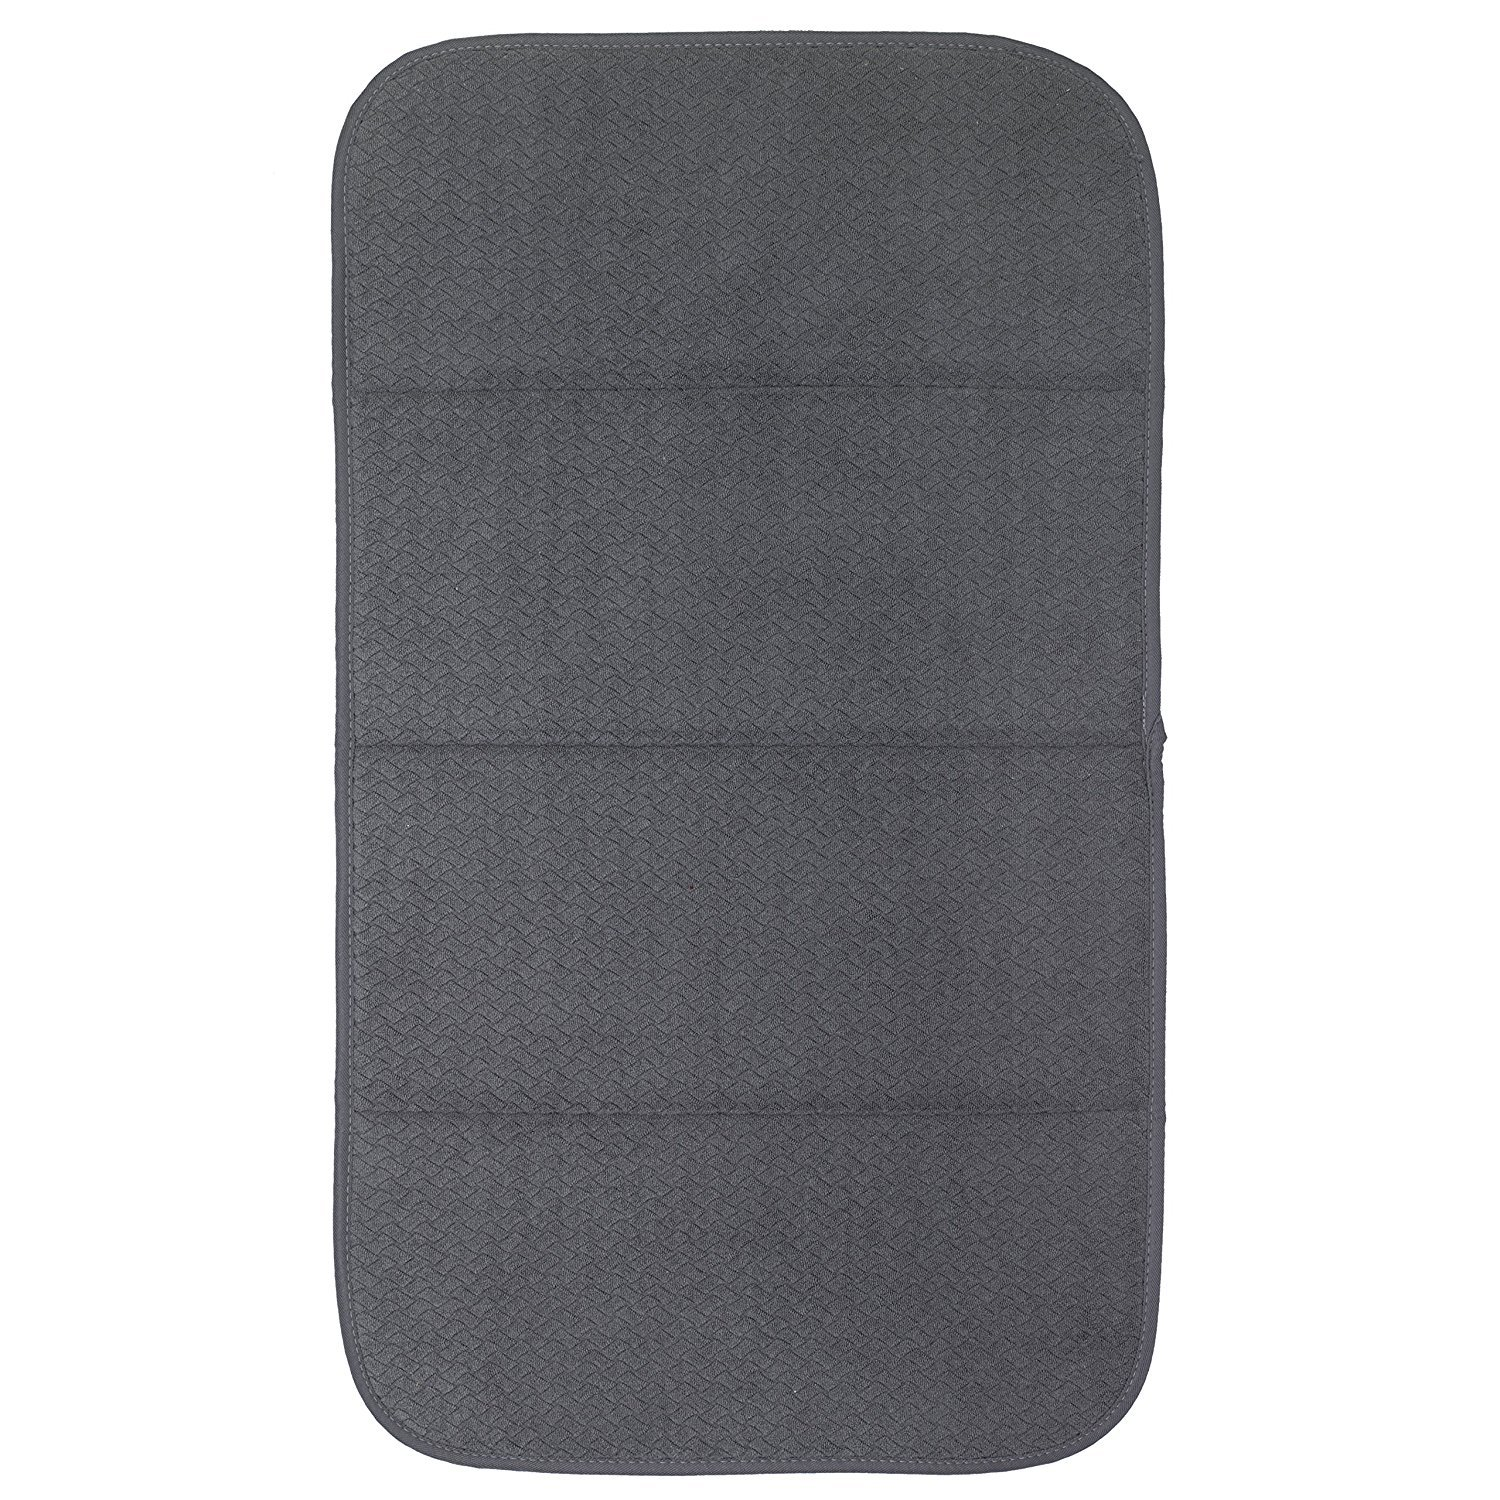 All-Clad Textiles Reversible Fast-Drying Mat, 16-Inch x 28-Inch, Pewter